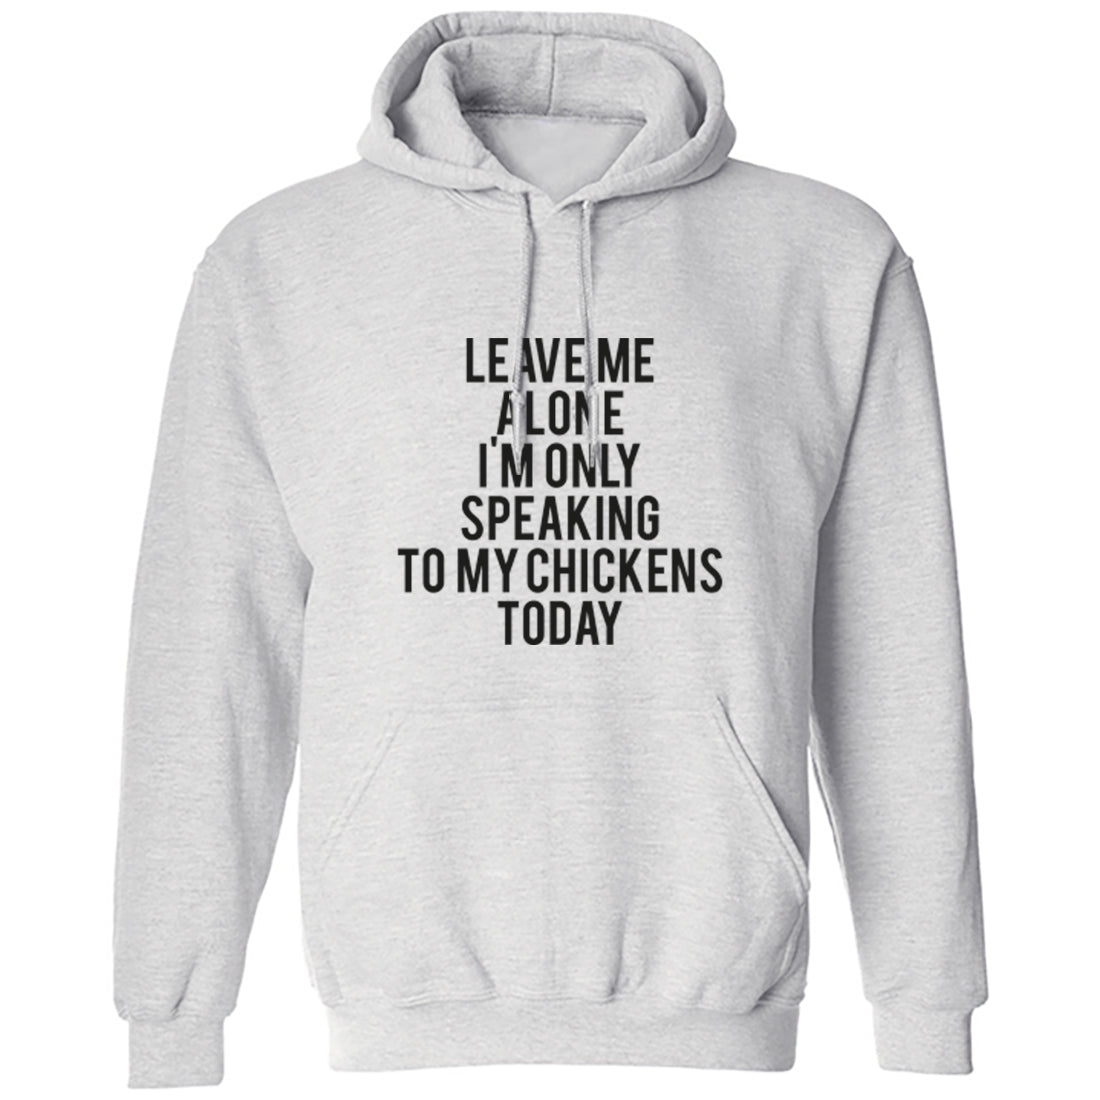 Leave Me Alone I'm Only Speaking To My Chickens Today Unisex Hoodie K0957 - Illustrated Identity Ltd.